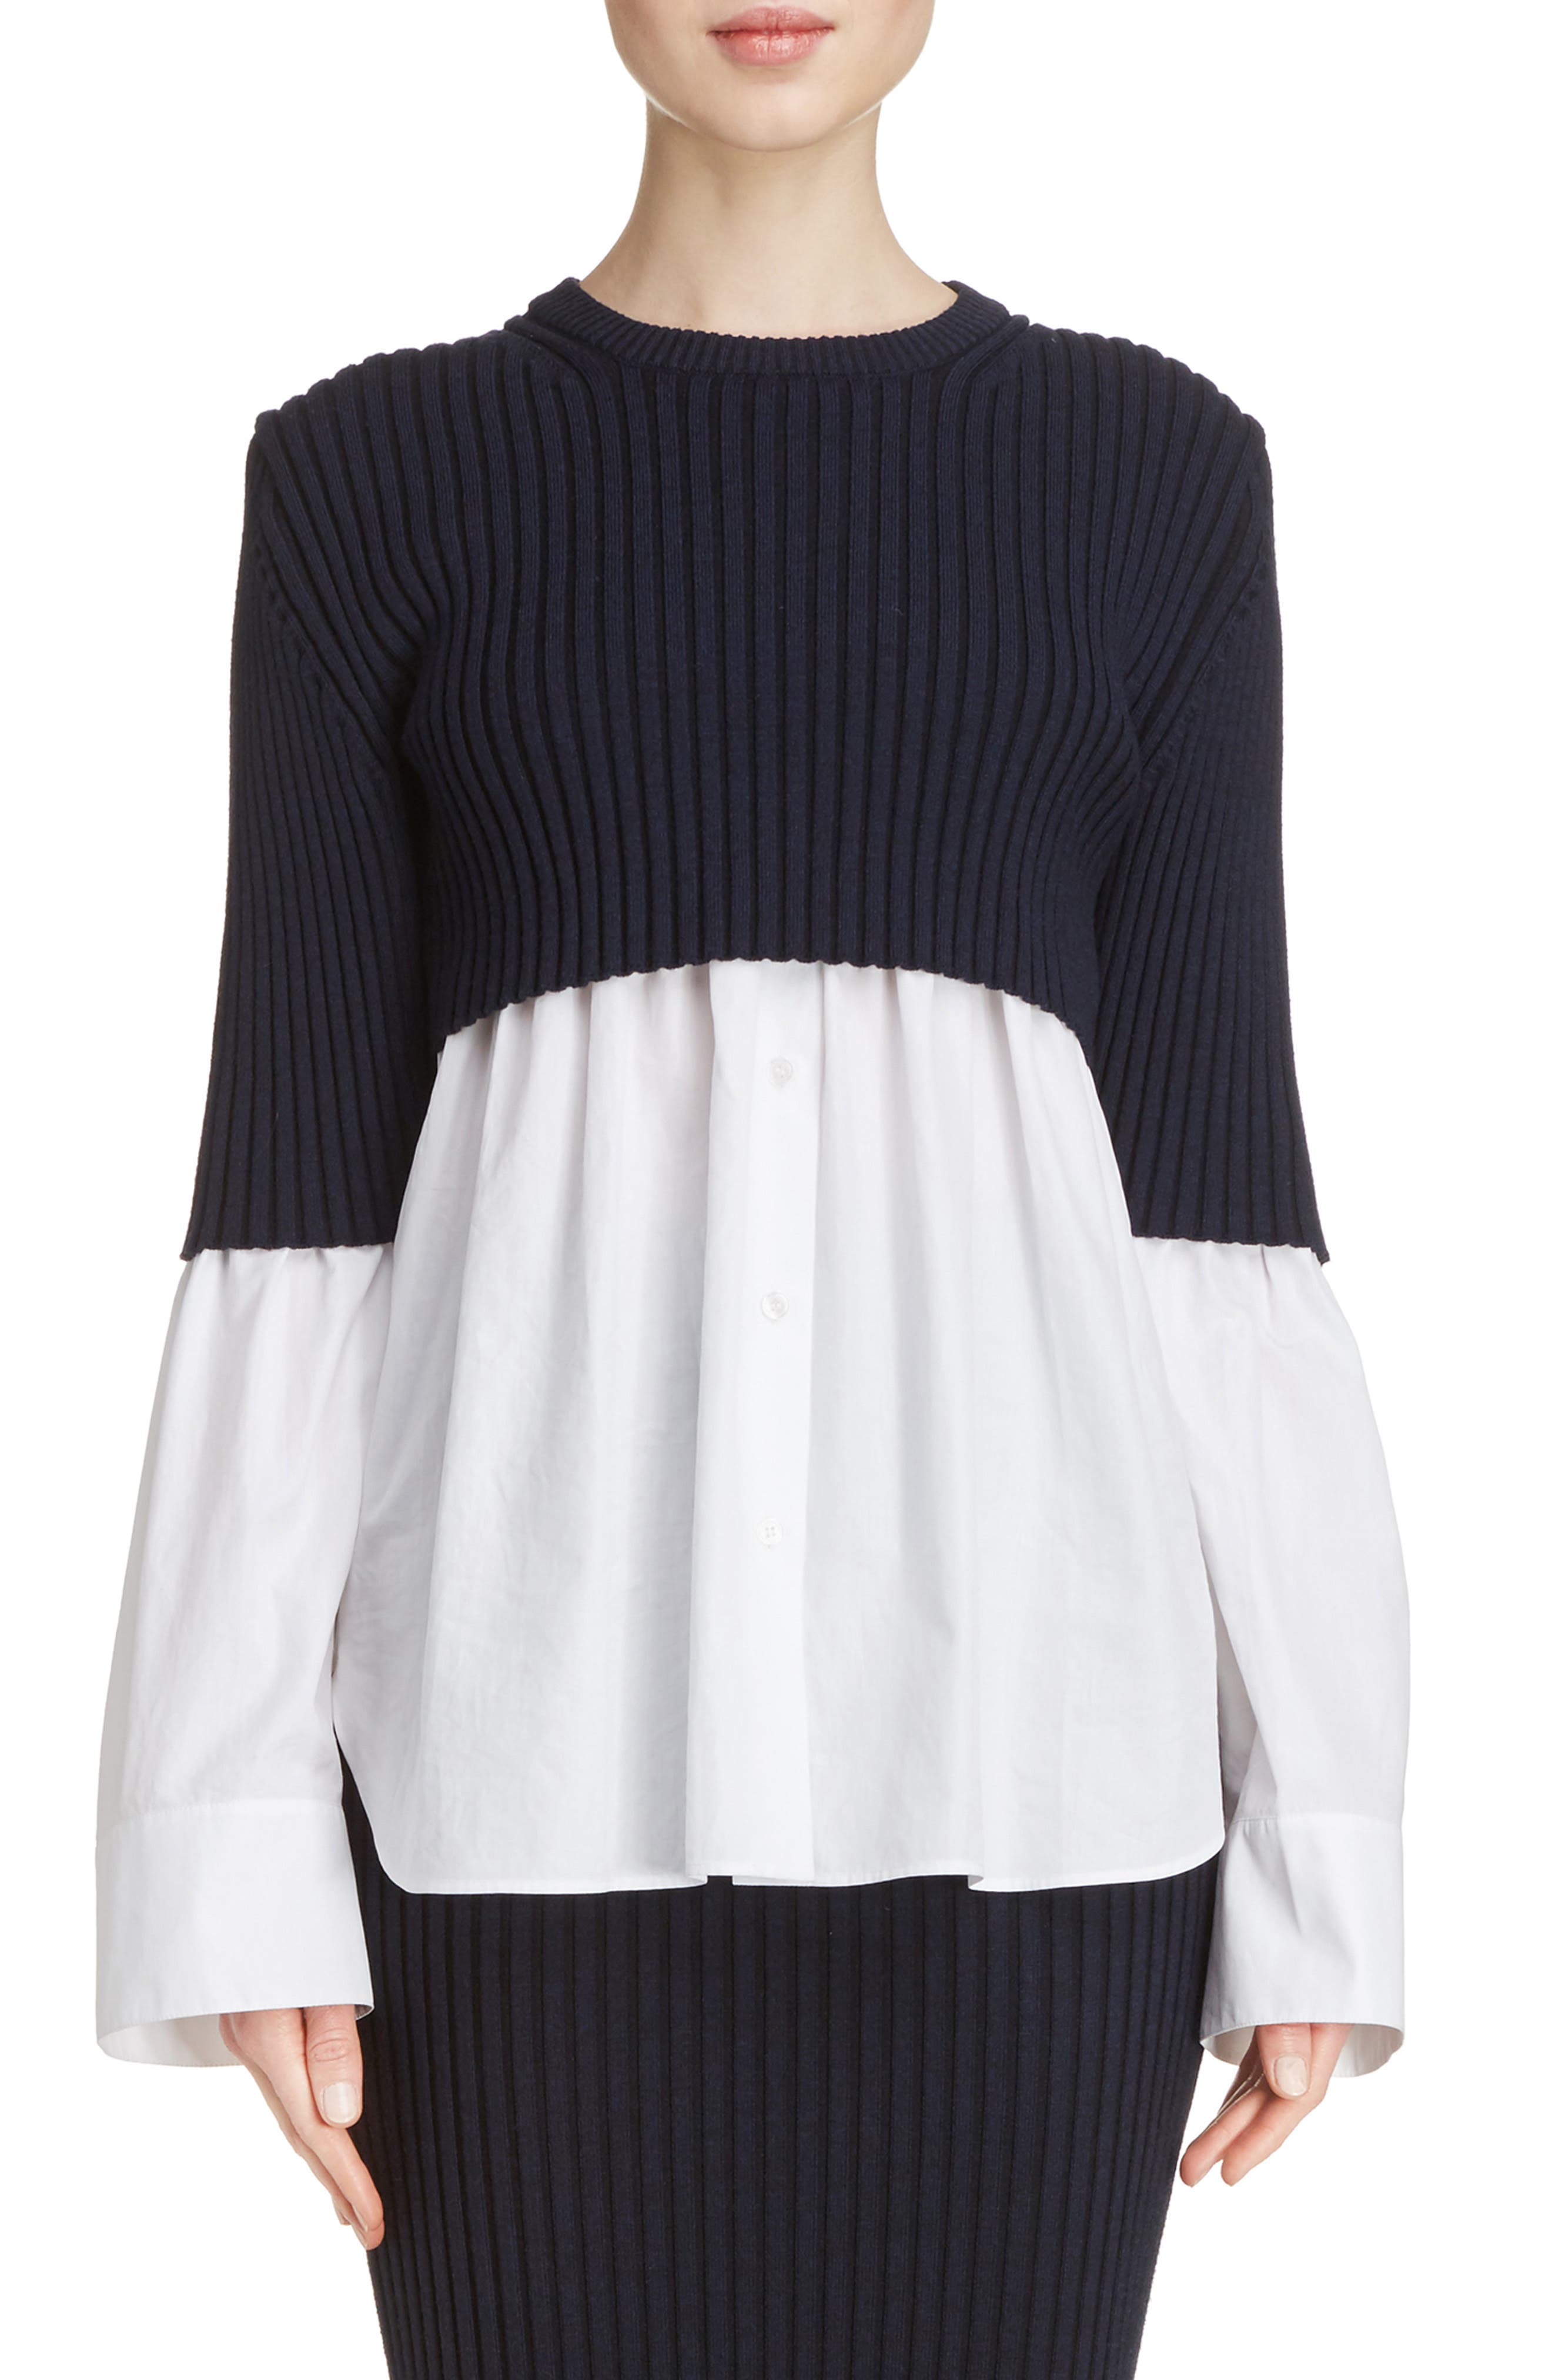 Alternate Image 1 Selected - KENZO Knit Overlay Cotton Blouse